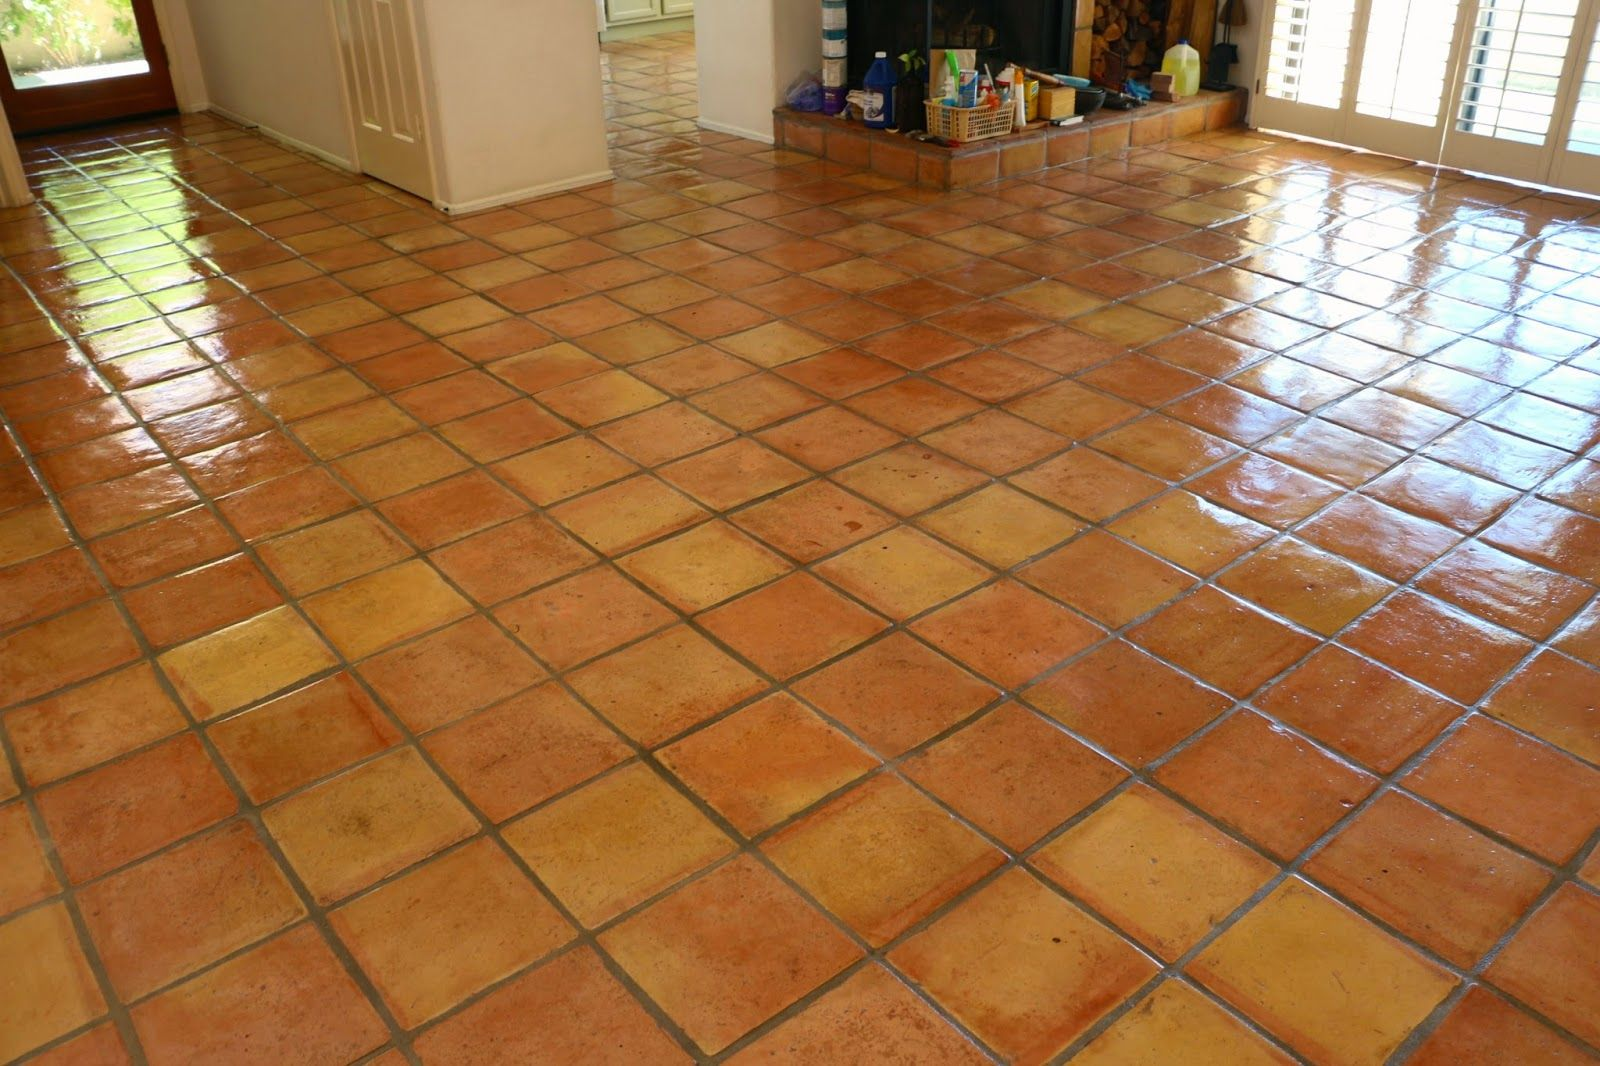 Ive lived on saltillo tile terra cotta tile floors for over ive lived on saltillo tile terra cotta tile floors for over dailygadgetfo Image collections